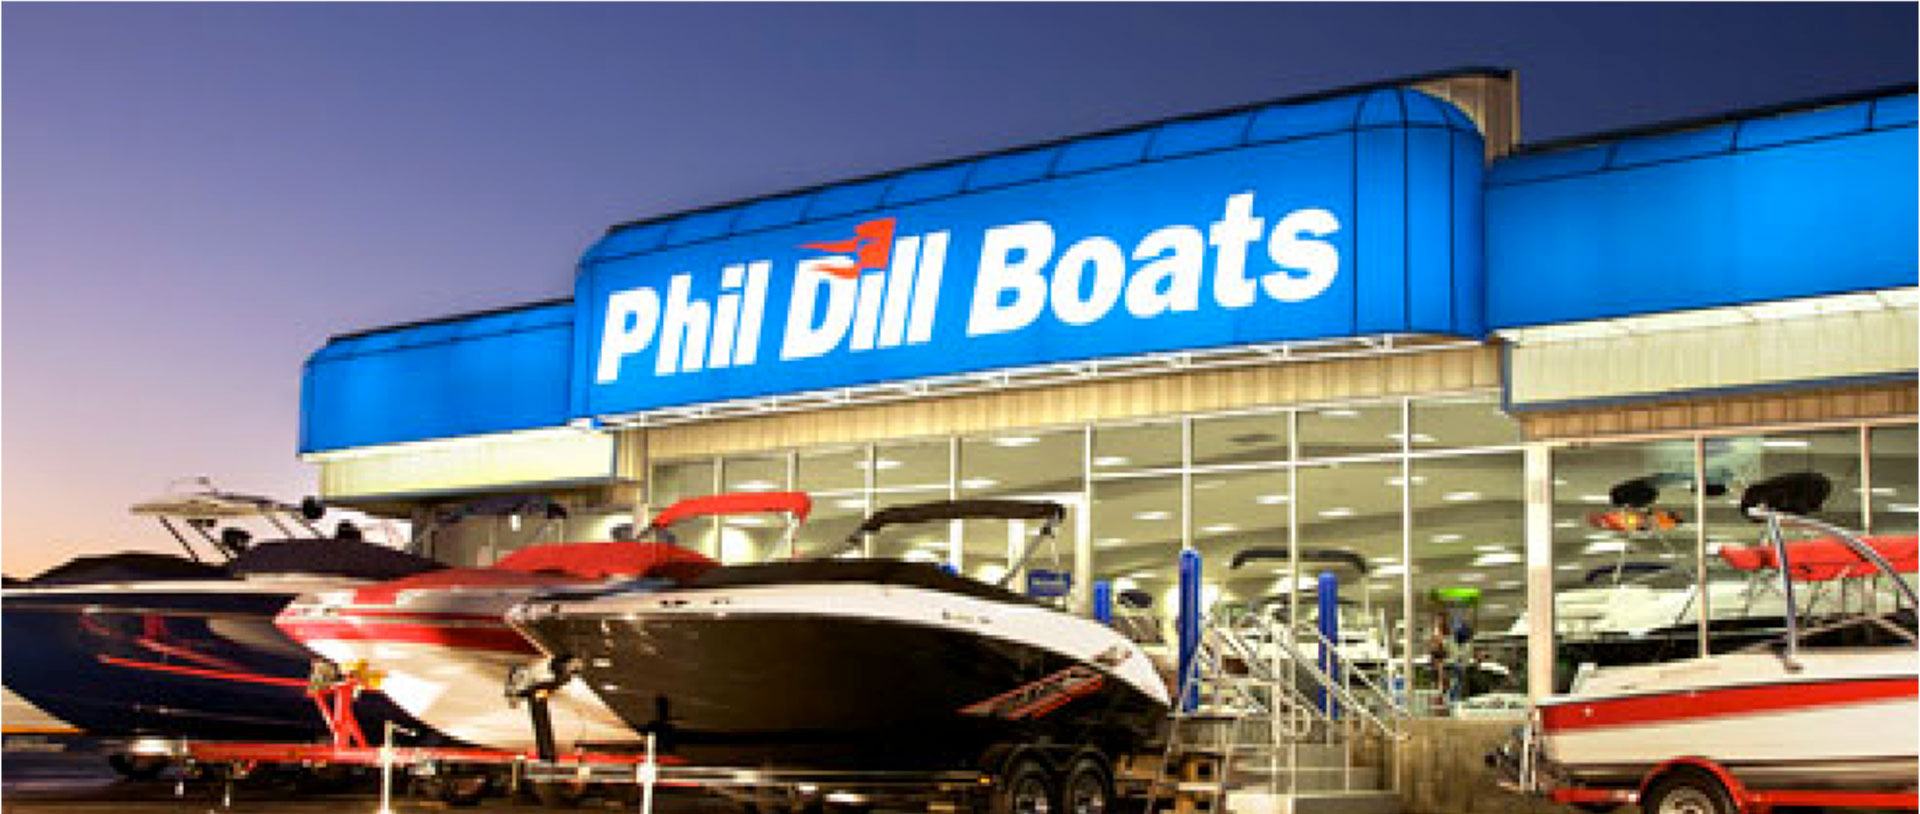 Phil Dill Boats Inc